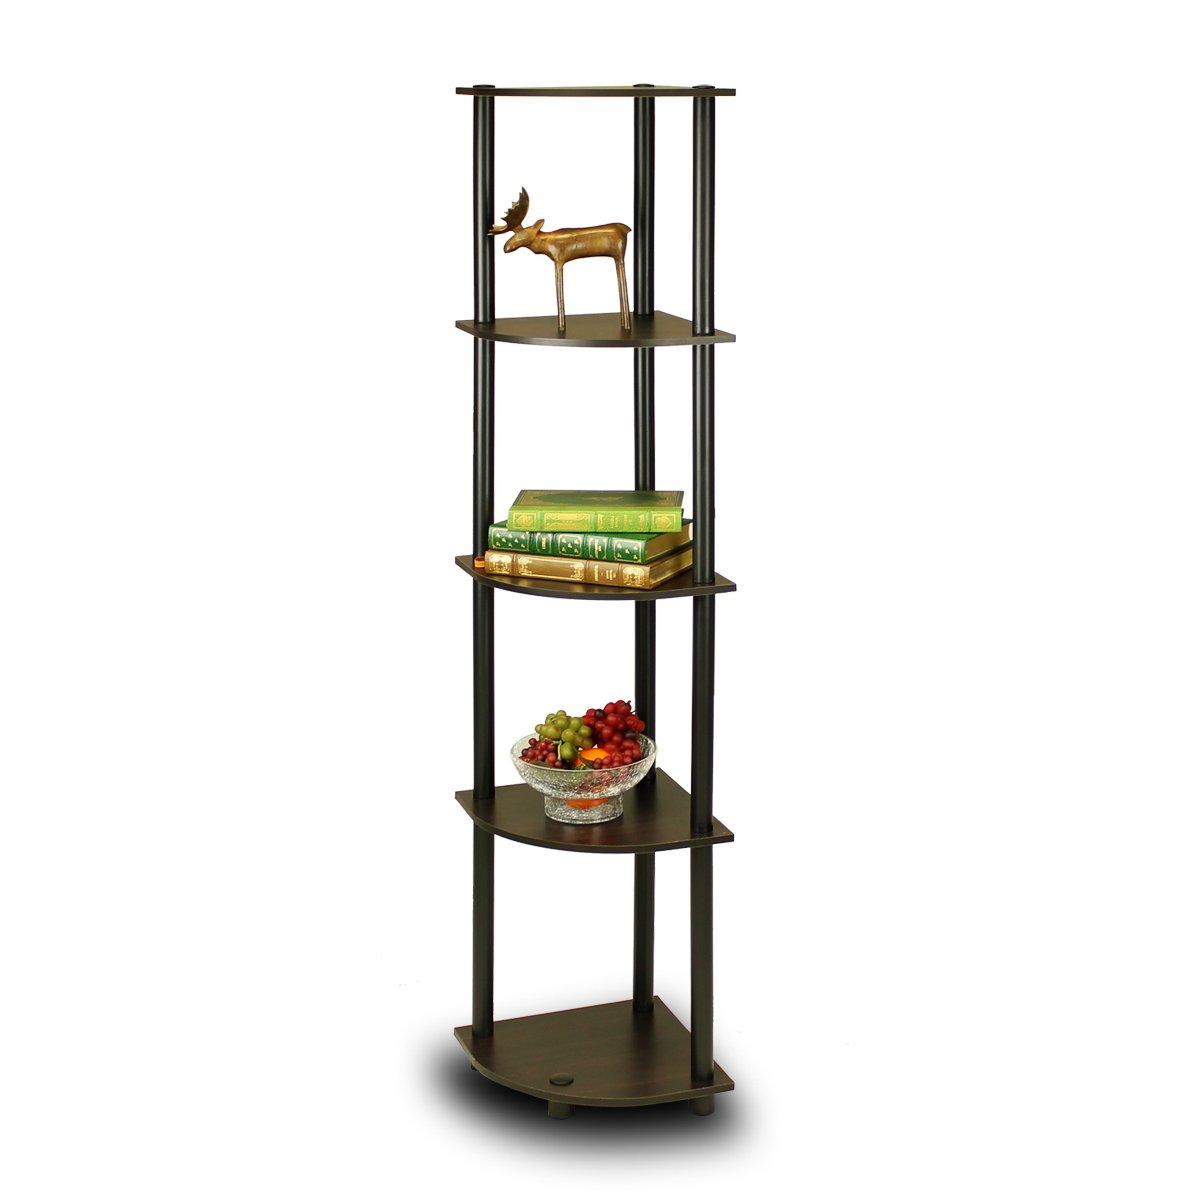 Uncategorized Corner Shel amazon com furinno 99811exbk turn n tube 5 tier corner shelf espressoblack kitchen dining